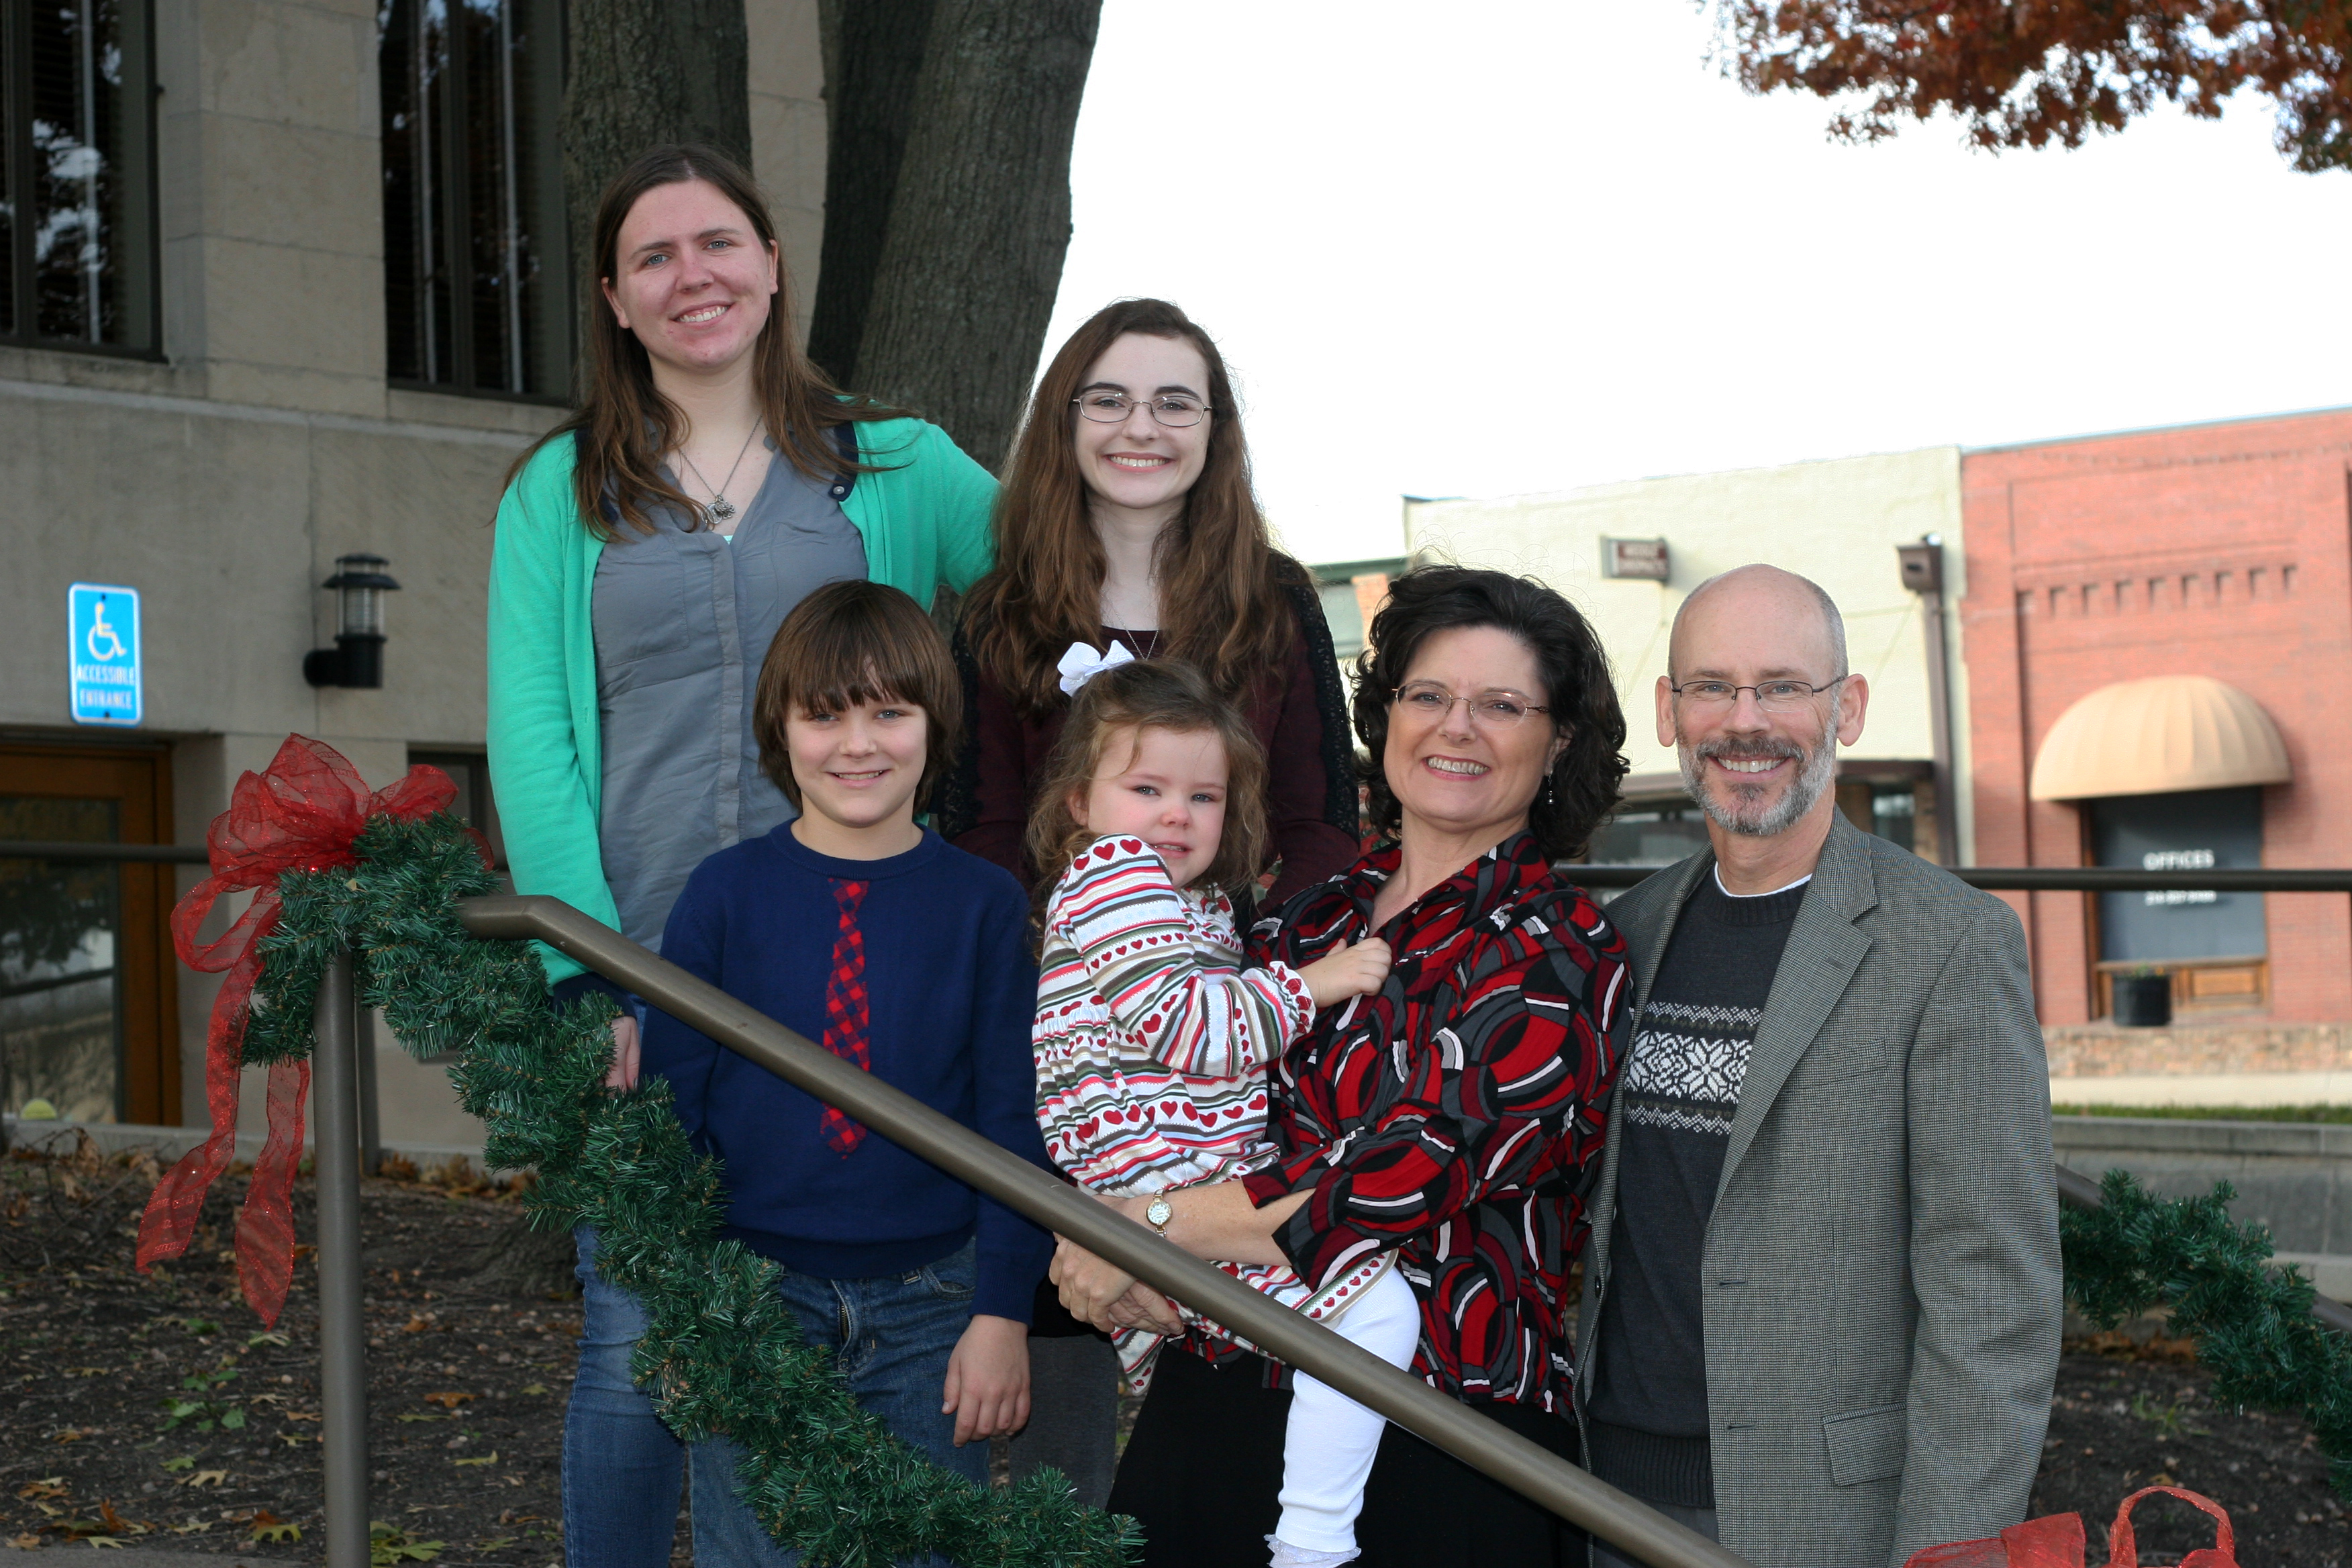 Family Pictures November